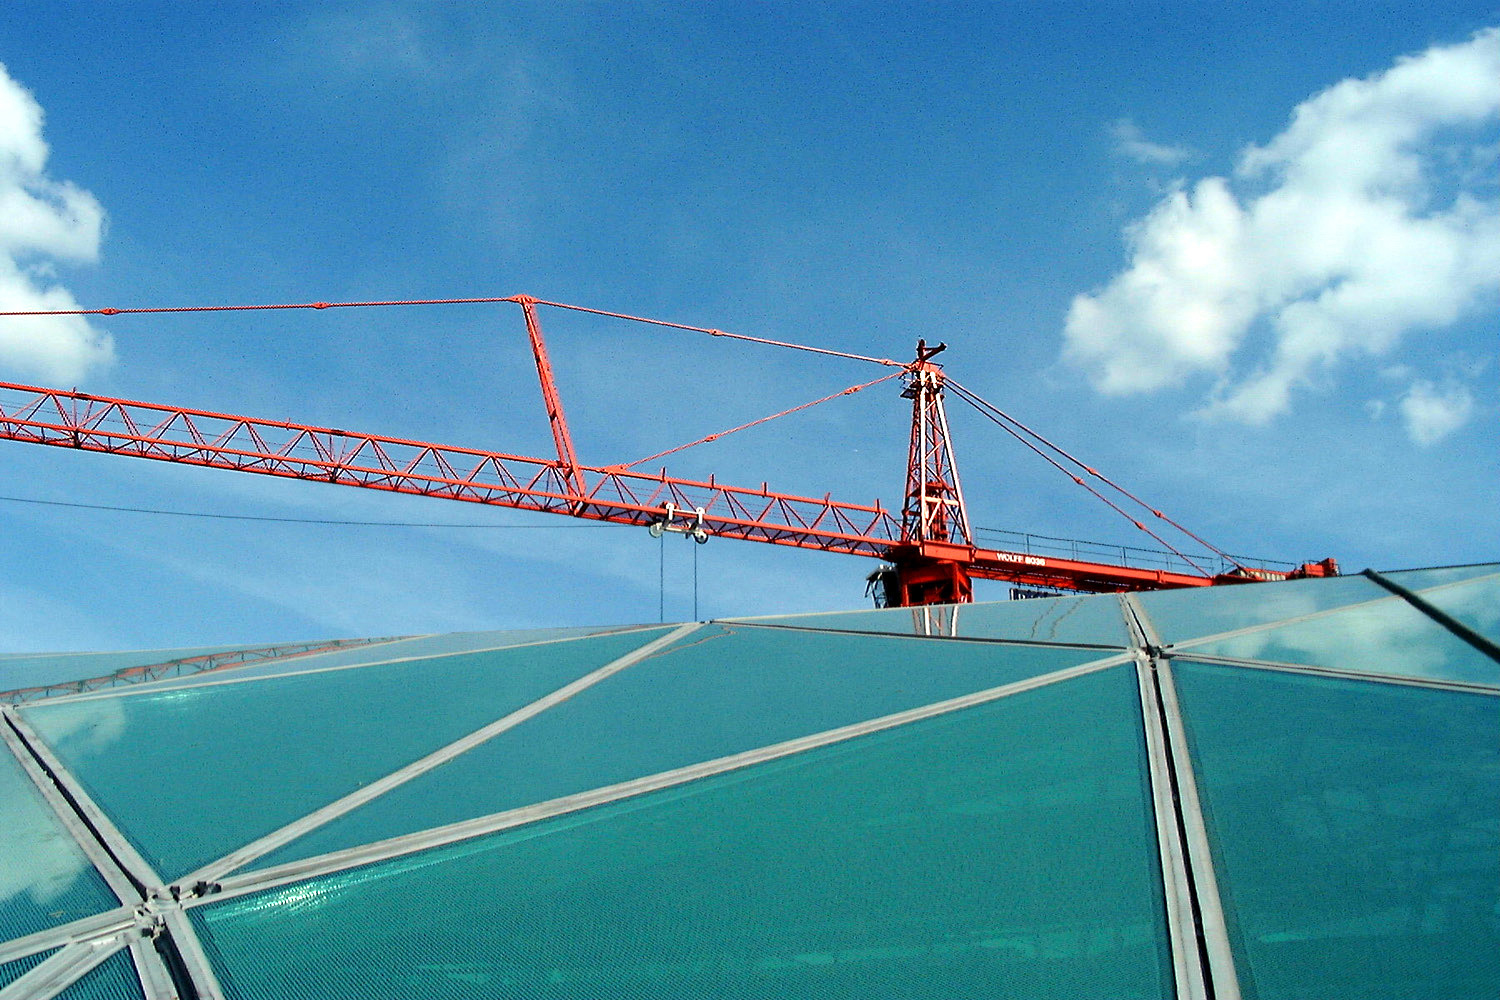 A photograph of a red crane over the roof of the Great Court, with a blue sky and fluffy white clouds beyond.